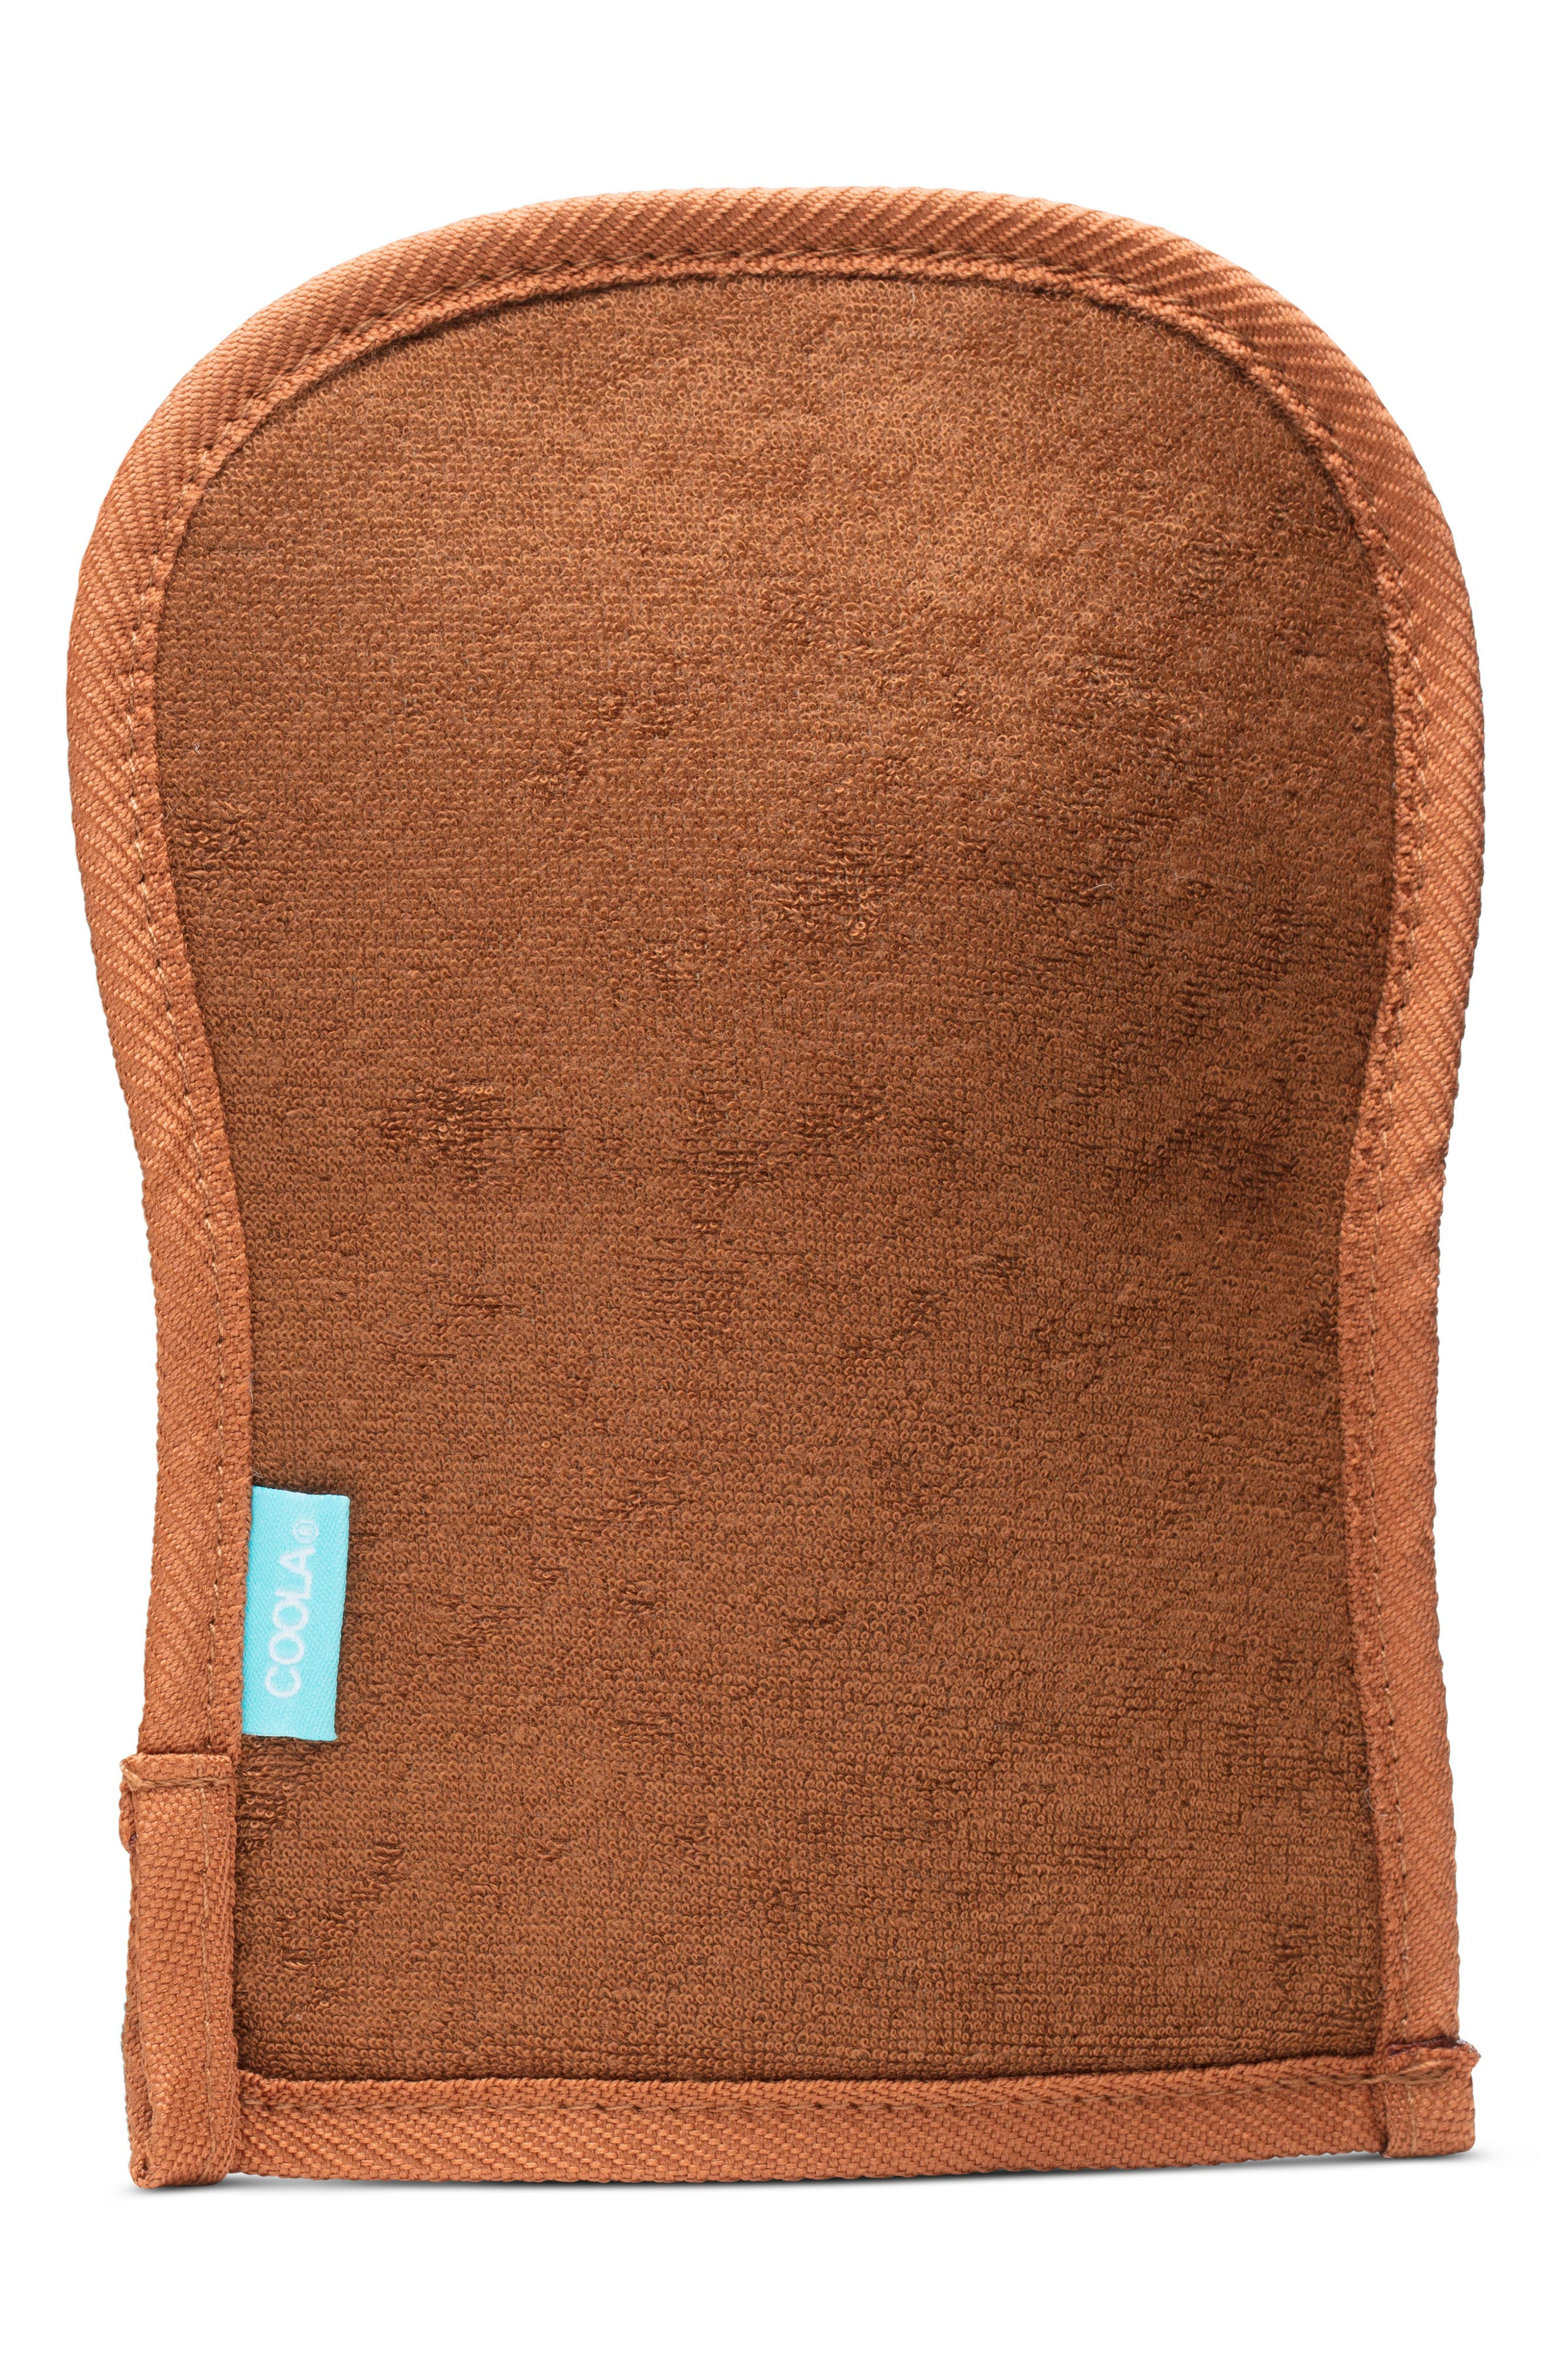 ,                             COOLA<sup>®</sup> Suncare Sunless Tan 2-in-1 Mitt,                             Main thumbnail 1, color,                             NO COLOR